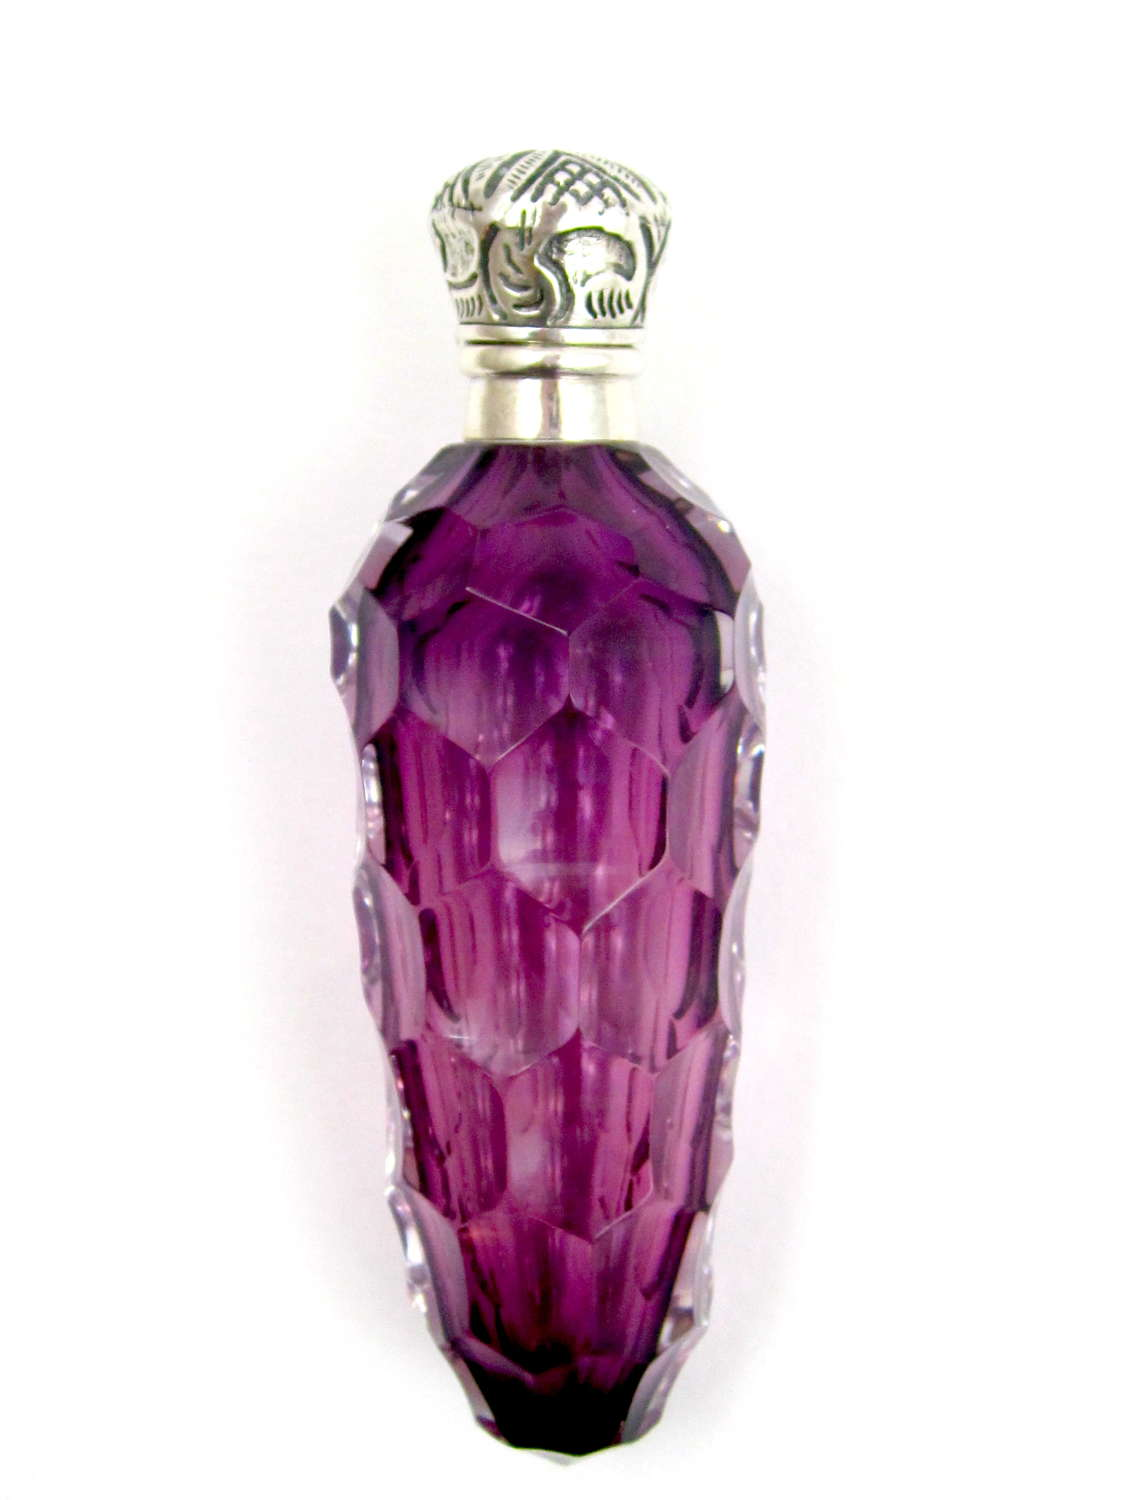 Antique French Amethyst Glass Honeycomb Perfume Bottle